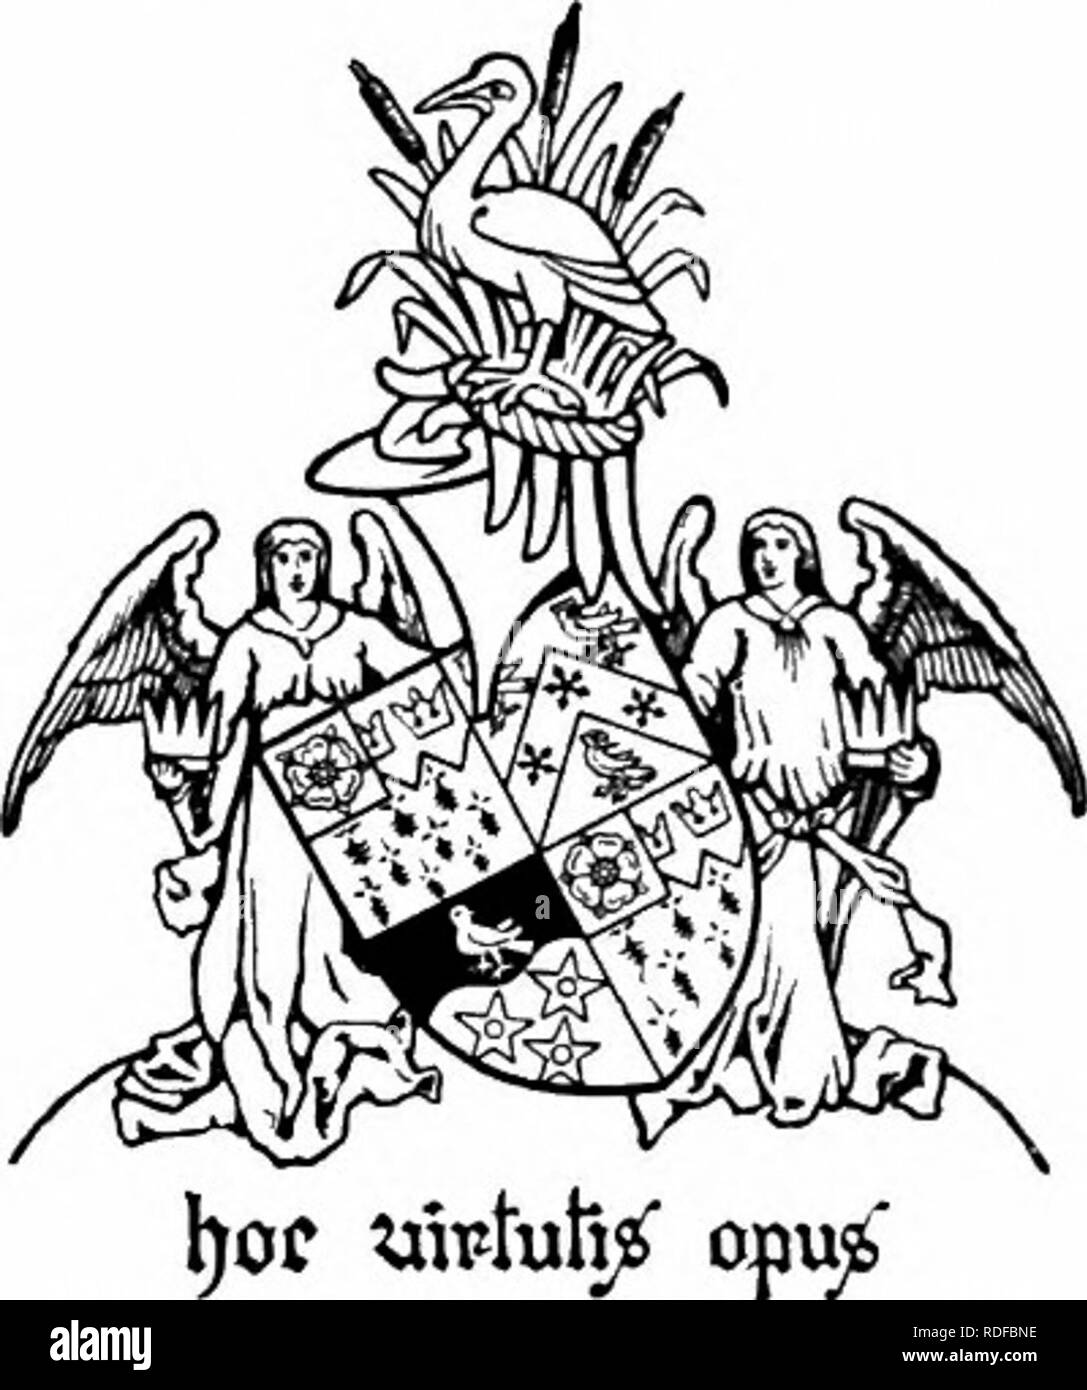 """. The Victoria history of the county of Hertford. Natural history. A HISTORY OF HERTFORDSHIRE connexion with Knebworth ceased, for in that year Robert Lytton came of age and received his in- heritance."""" Upon Robert's death without male heirs Knebworth passed by will to his brother Rowland,"""" whose son Rowland inherited it in 1582."""" William Lyttoa, son of the second Rowland, succeeded to Knebworth at his father's death in 1615,"""" and held it until 1660, when he was succeeded by his son, another Rowland.67 William son of Sir Rowland Lytton inherited the manor in 1674, and died  - Stock Image"""